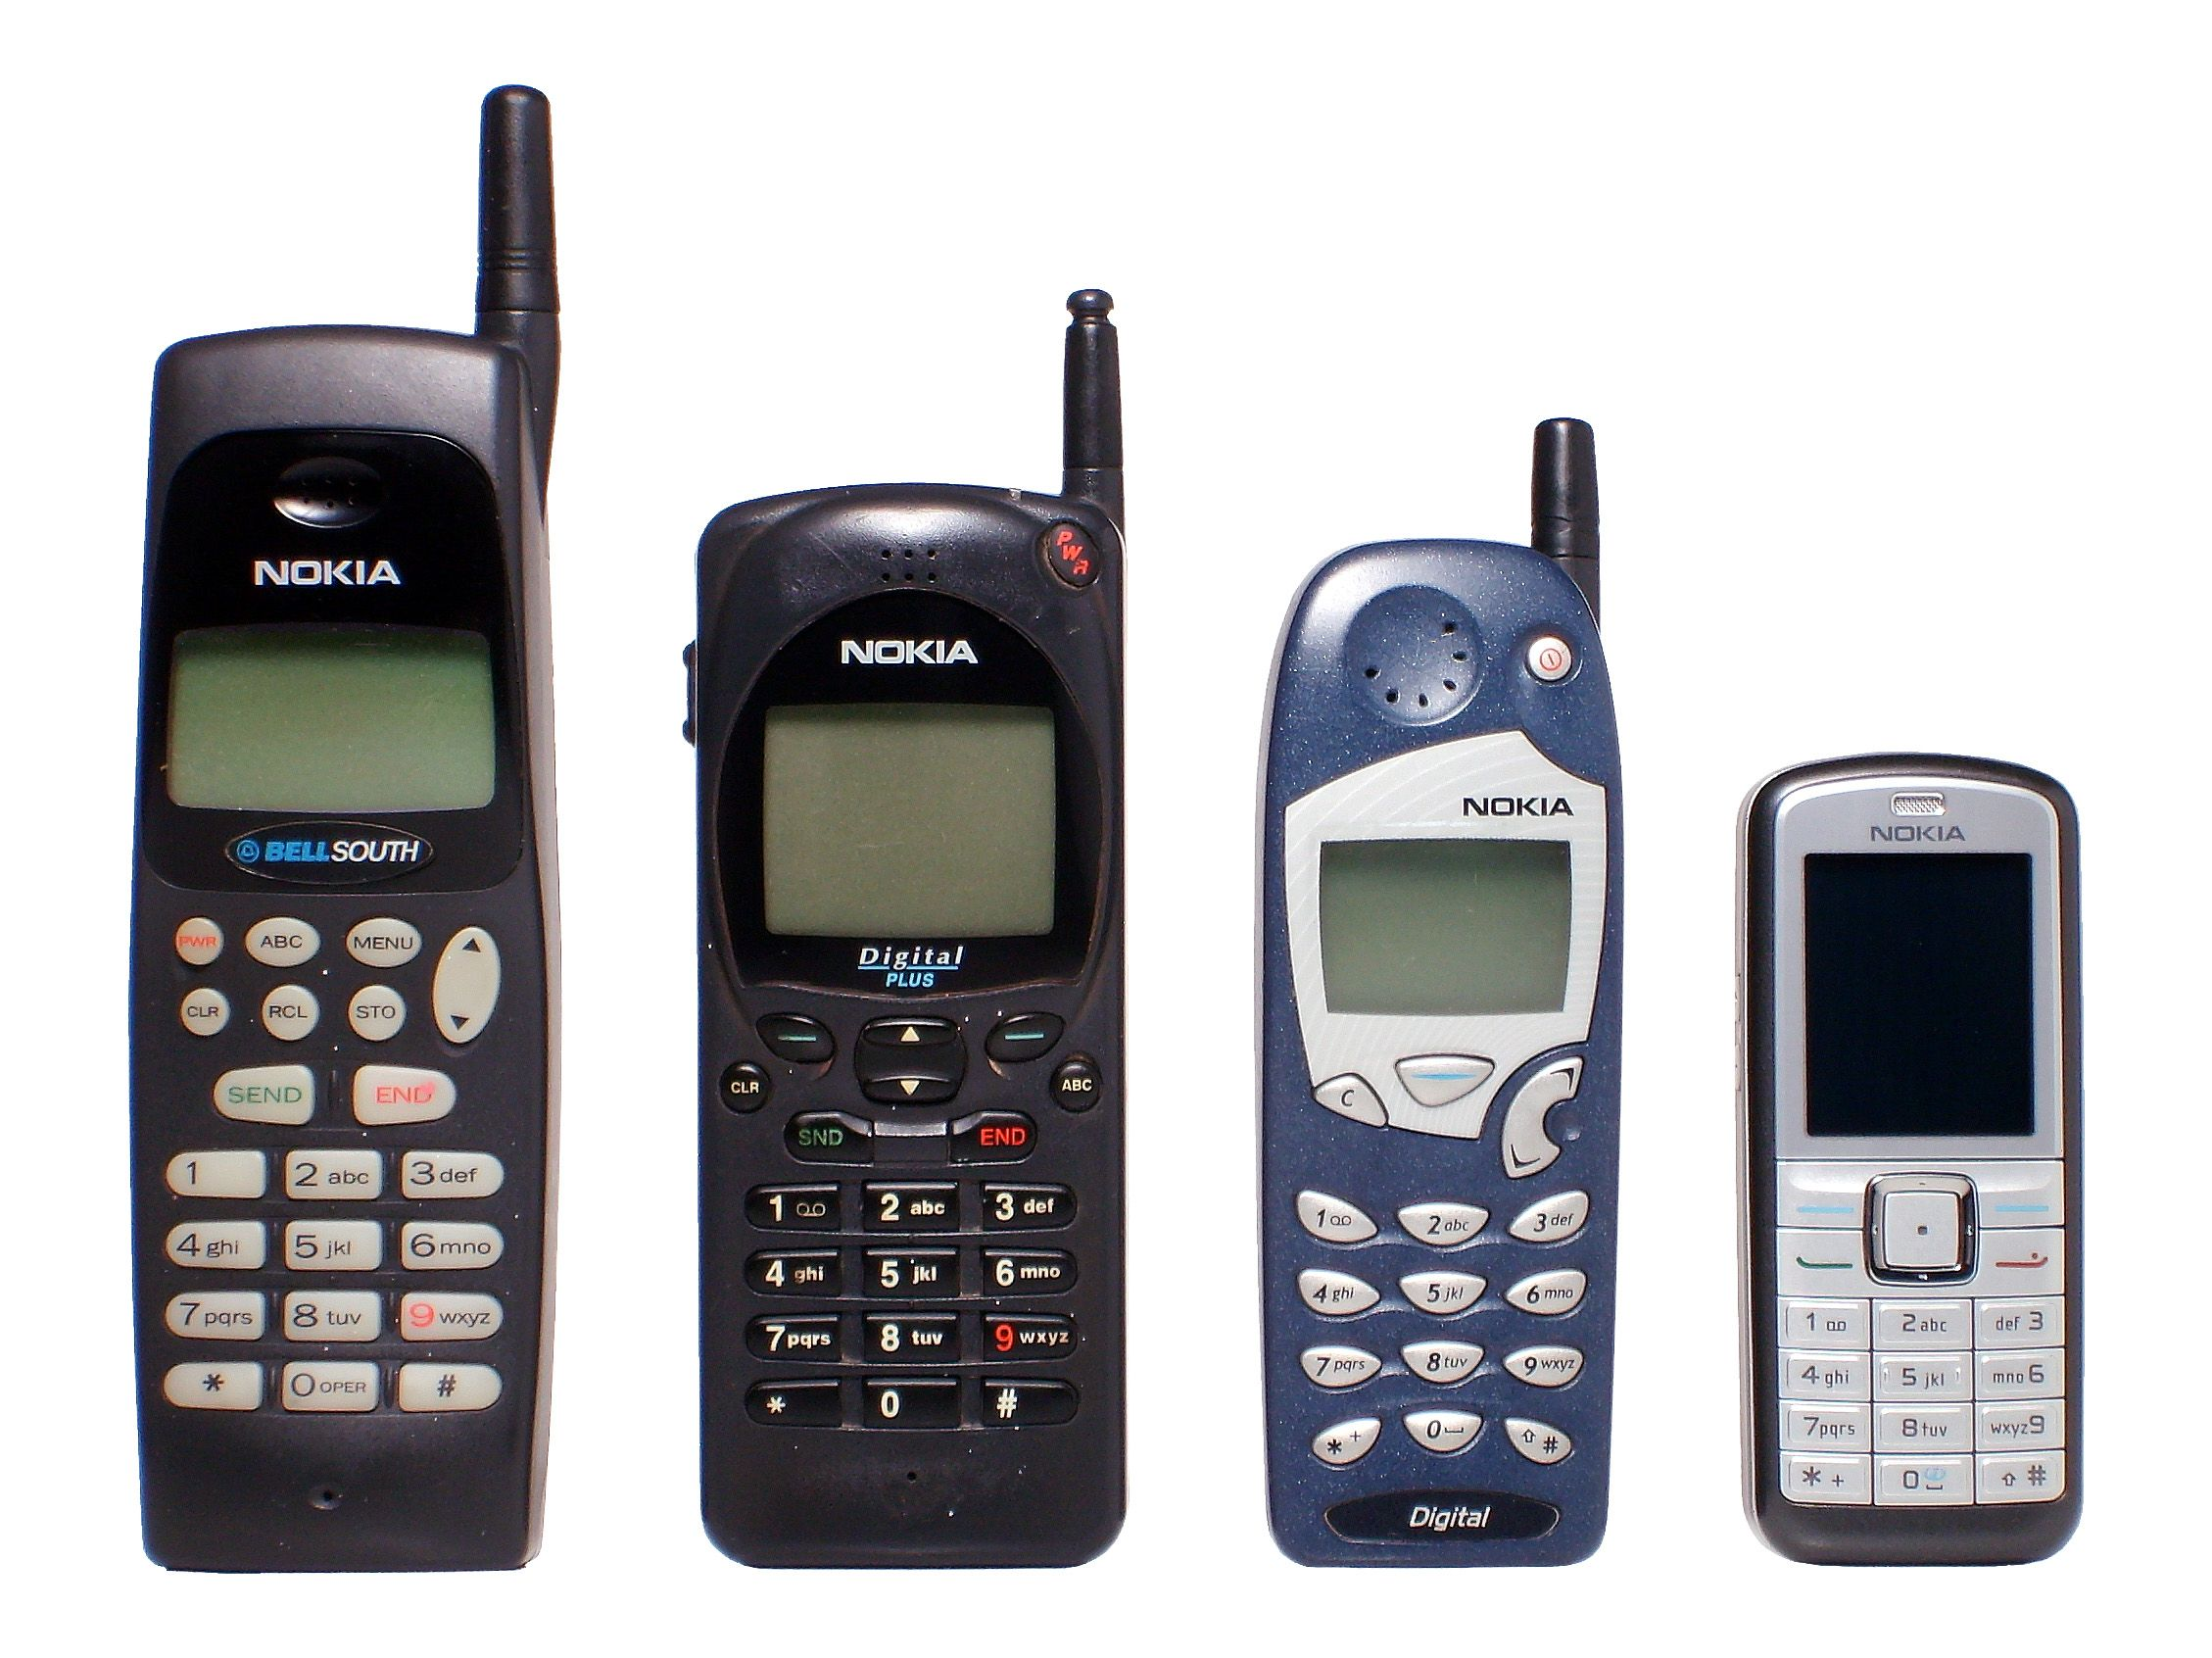 End of the line for new Nokia branded mobile phones? | Old phone, Nokia,  Mobile phone